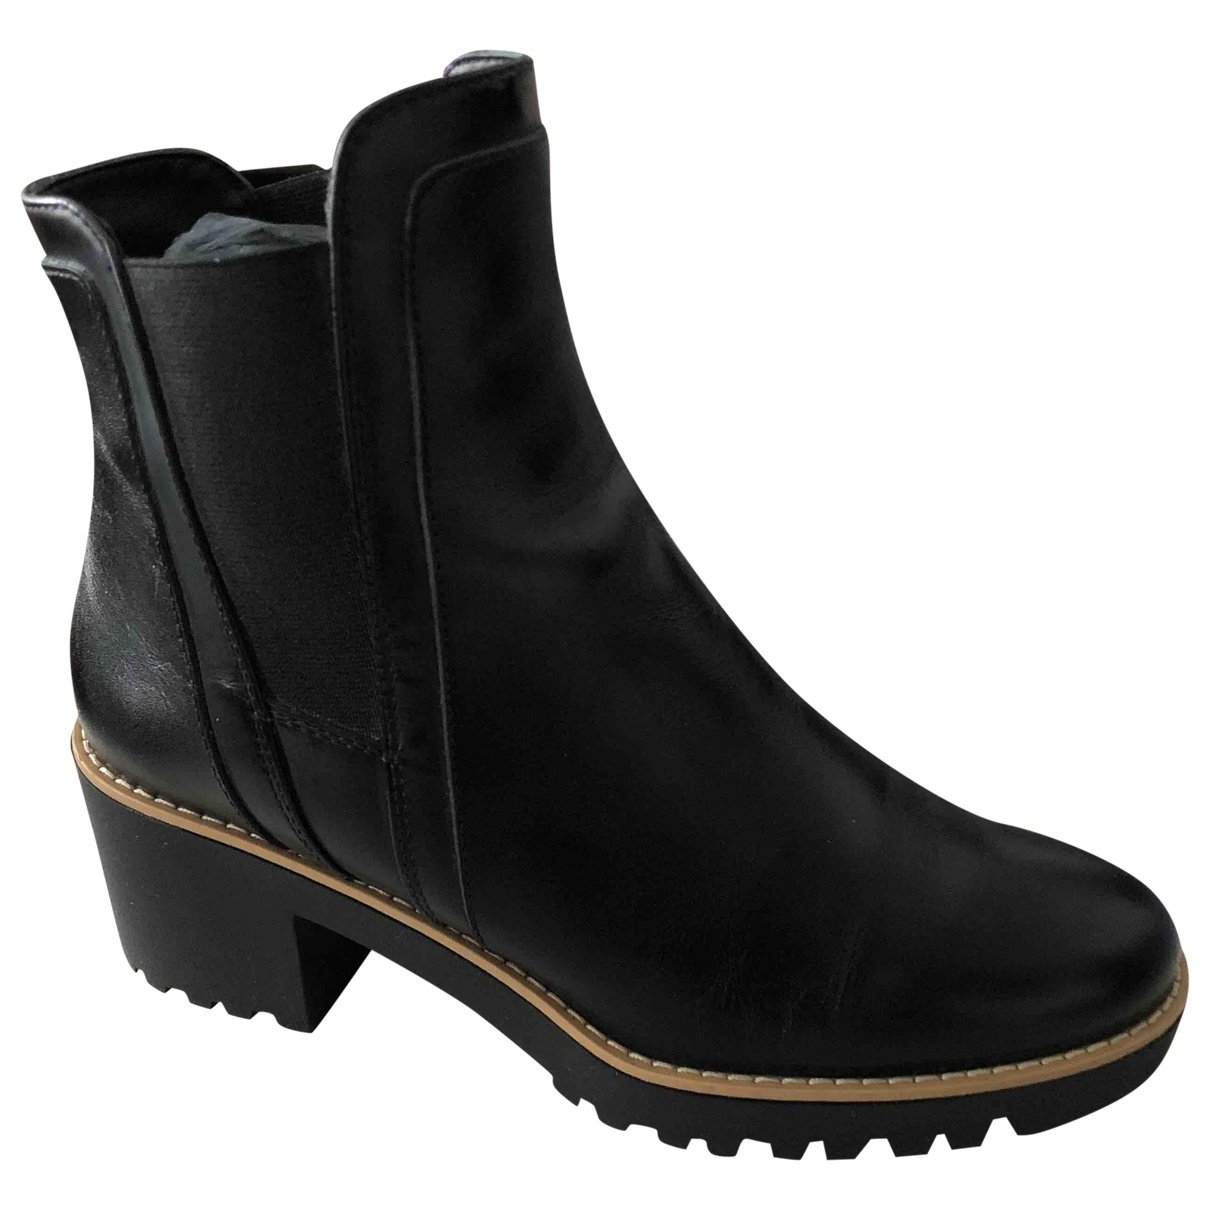 Hogan N Black Leather Ankle boots for Women